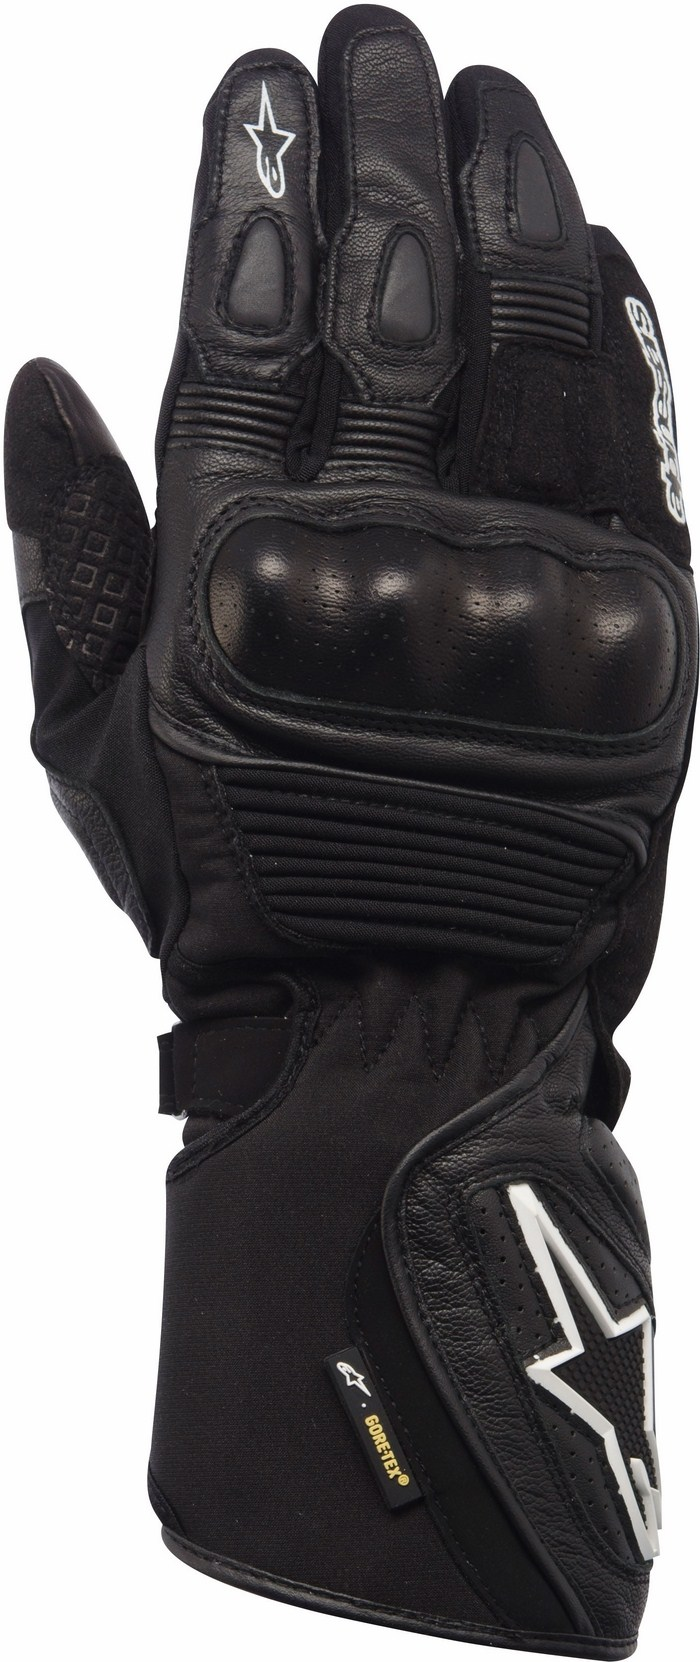 Alpinestars GT-S X-Trafit gloves black